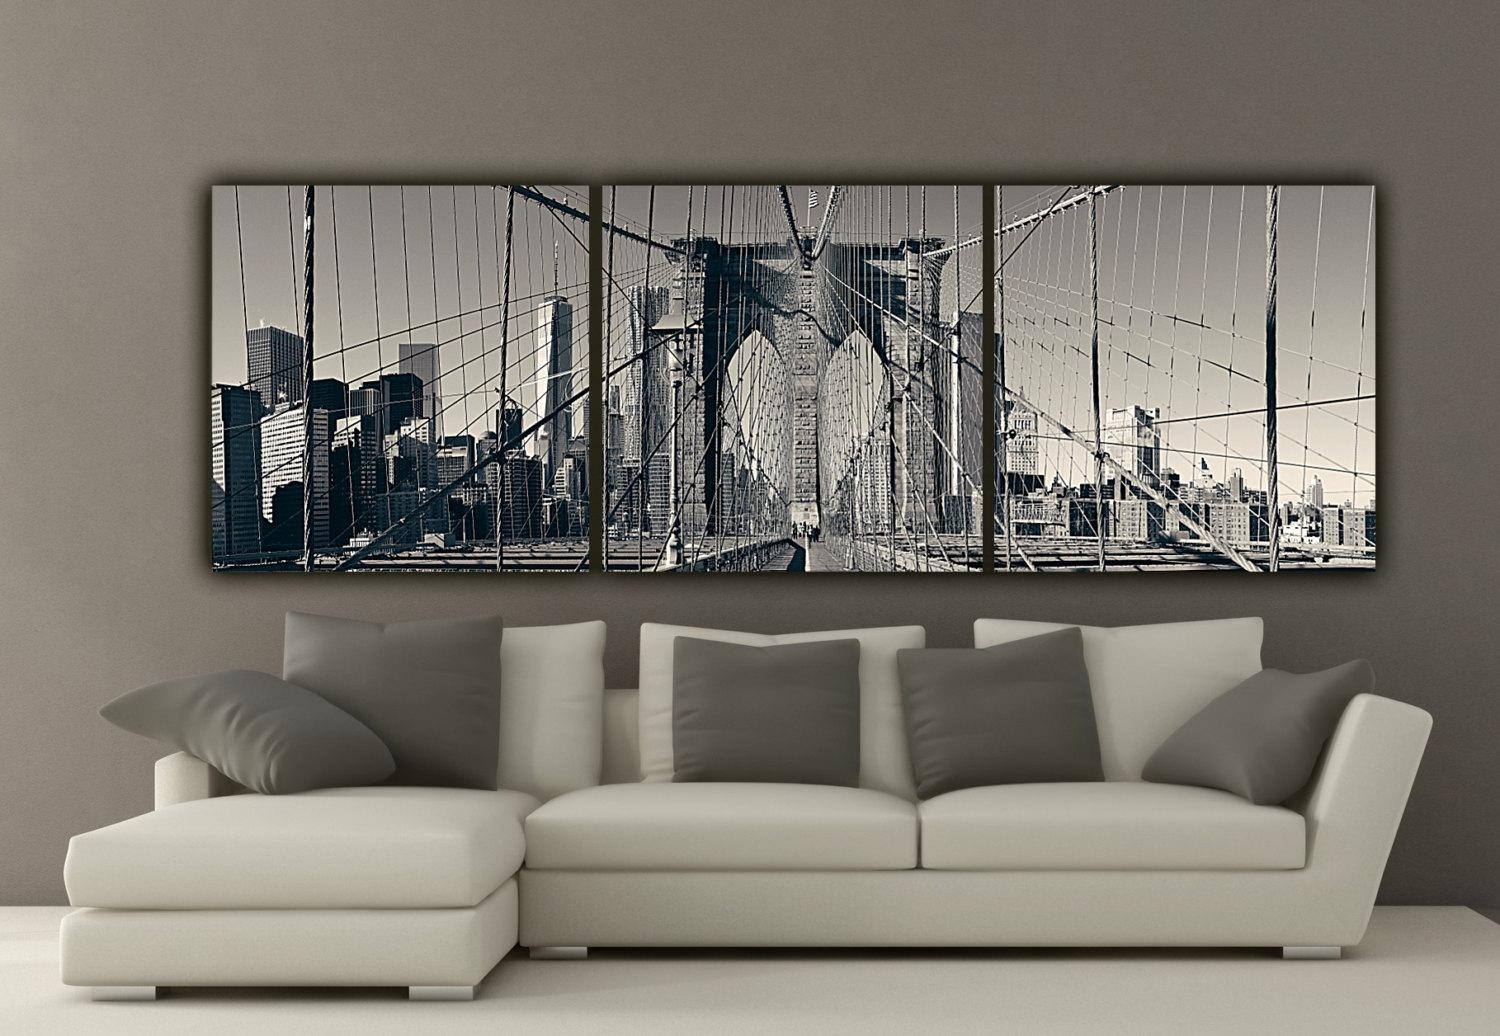 New York Brooklyn Bridge Canvas Wall Art Black And White New pertaining to Black And White Wall Art